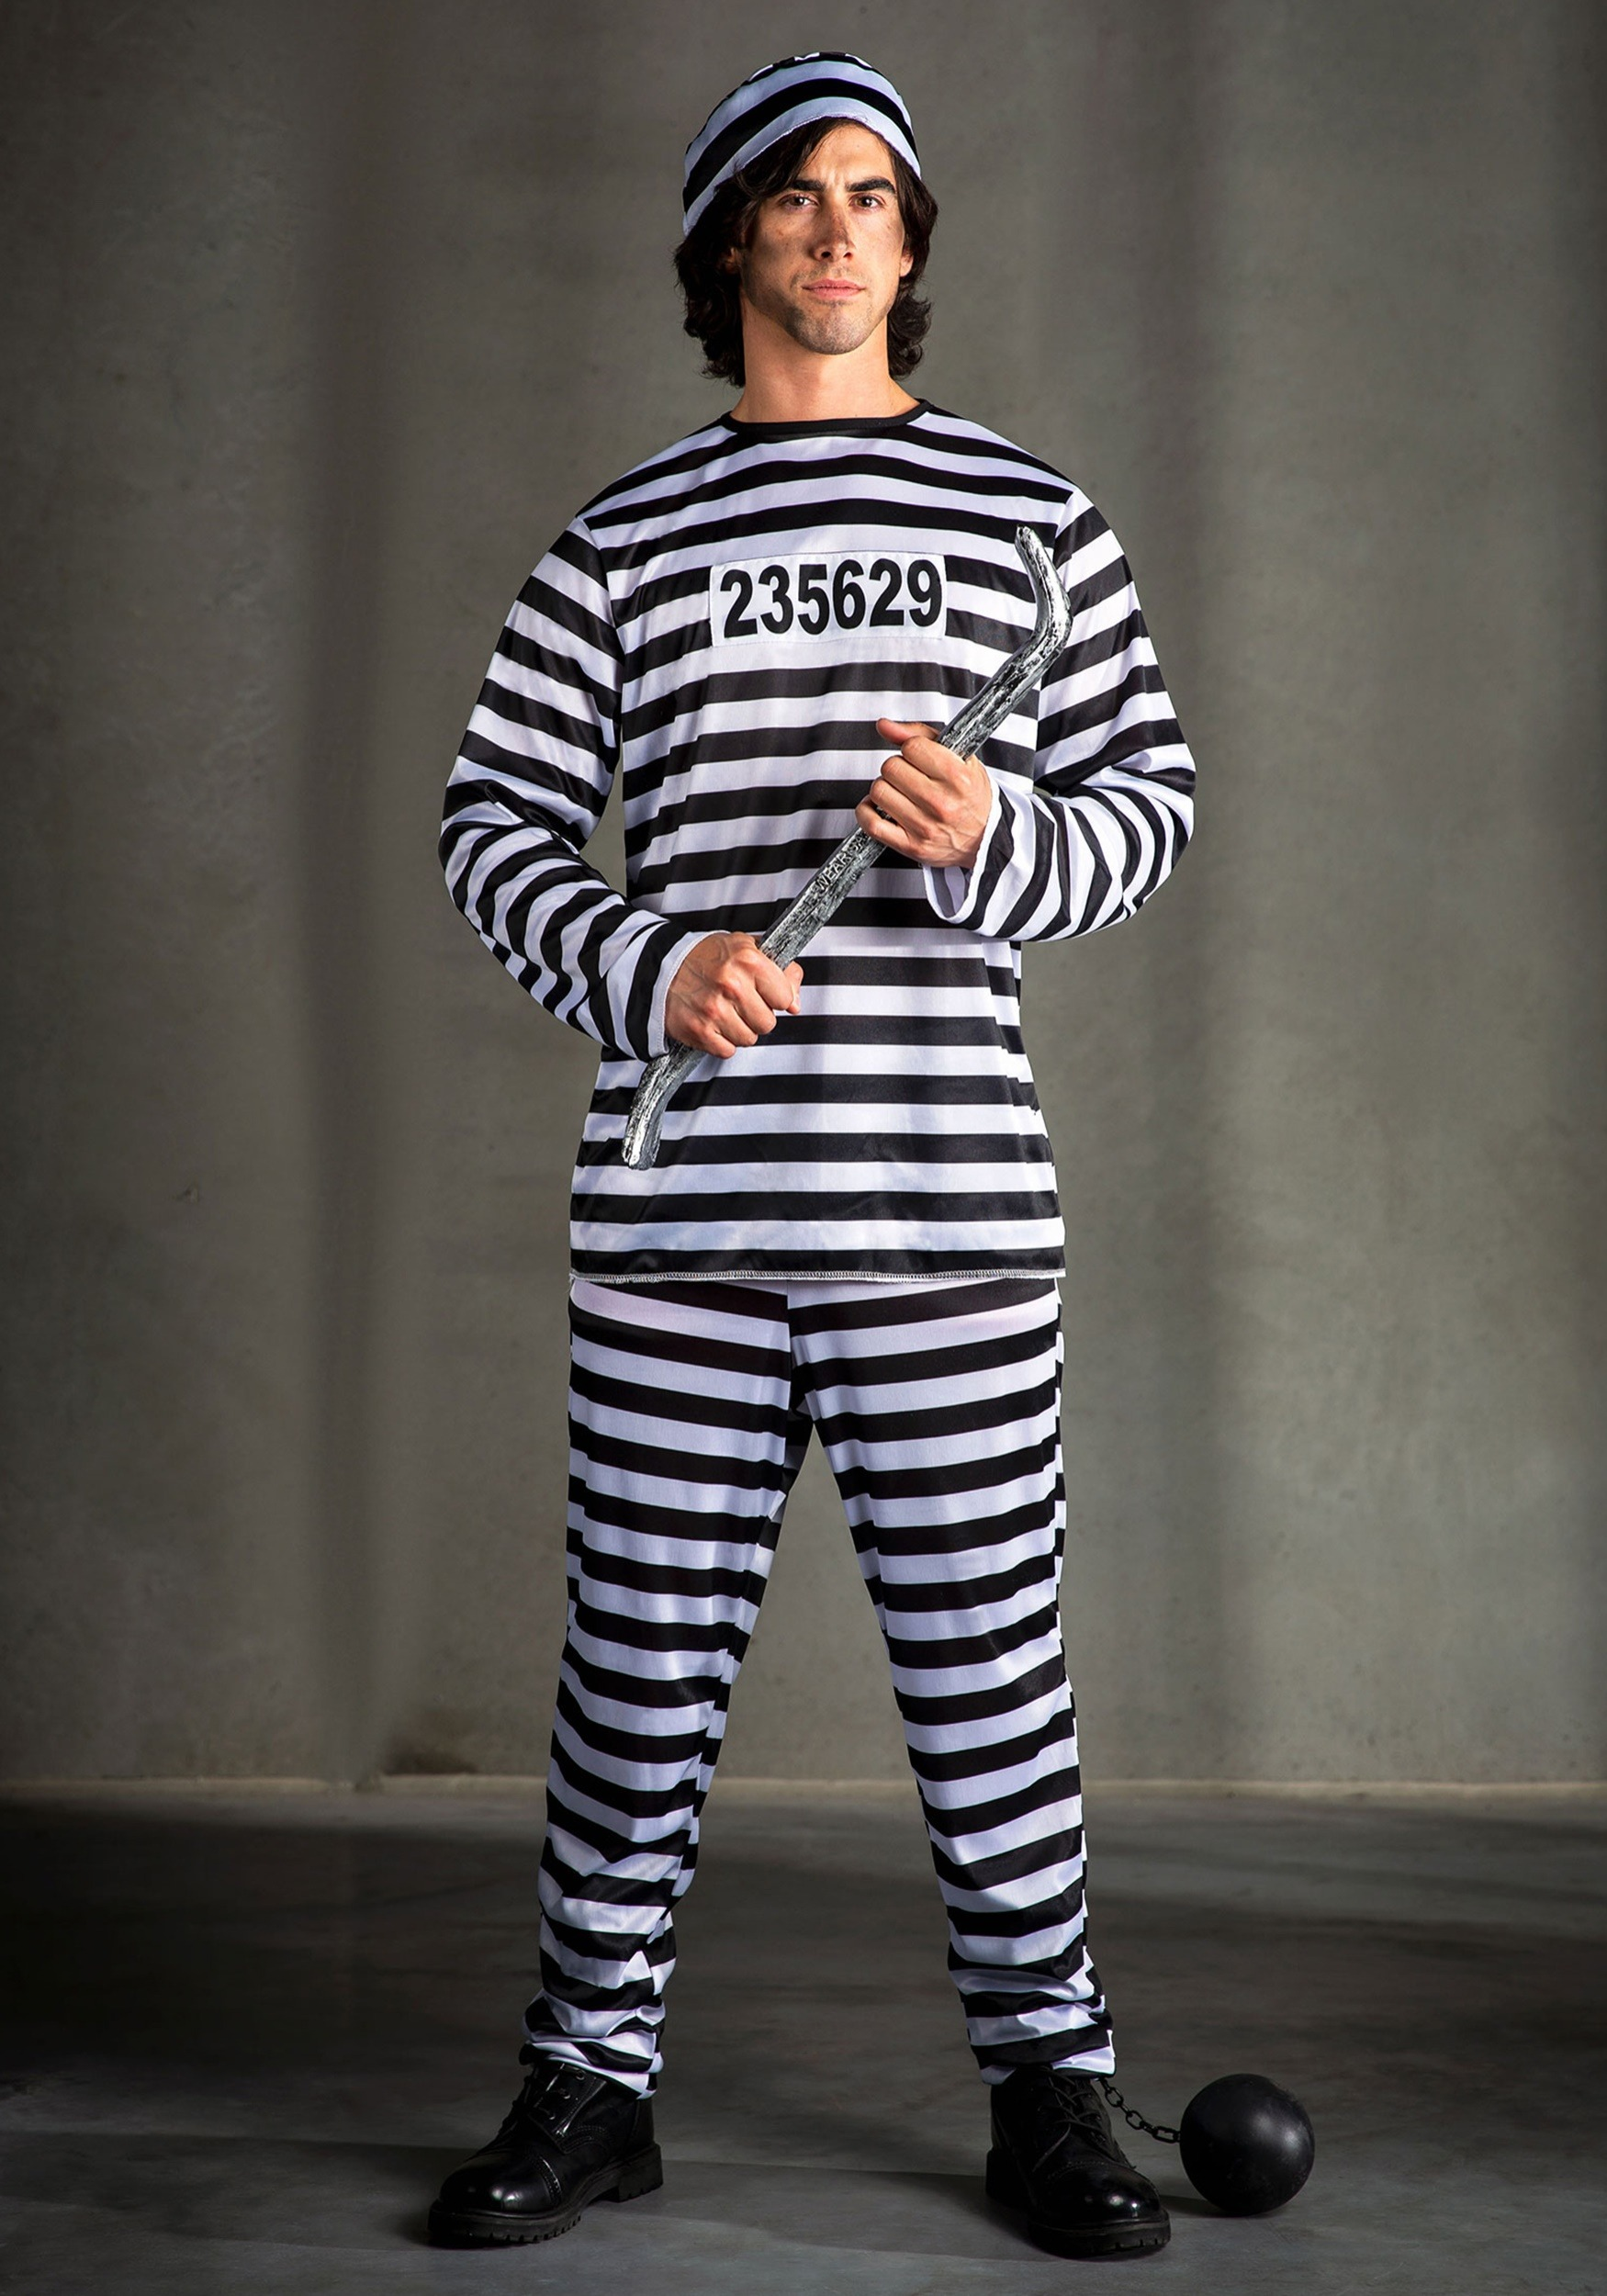 Halloween Costumes Prisoner Girl